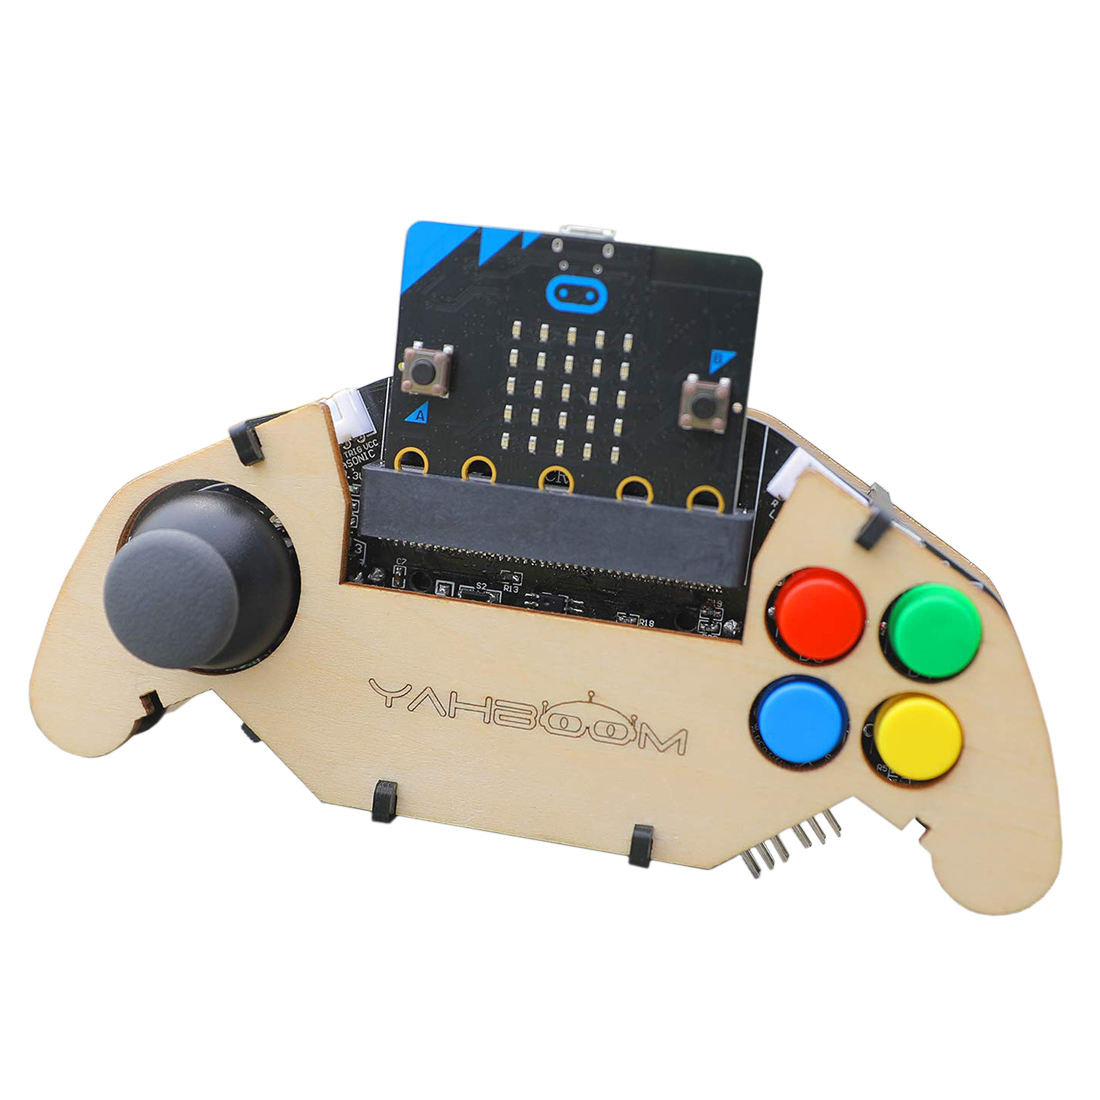 Micro:Bit Gamepad Expansion Board Handle Microbit Robot Car Joystick STEM Toy Programming Game Controller(Withou Micro:Bit Board